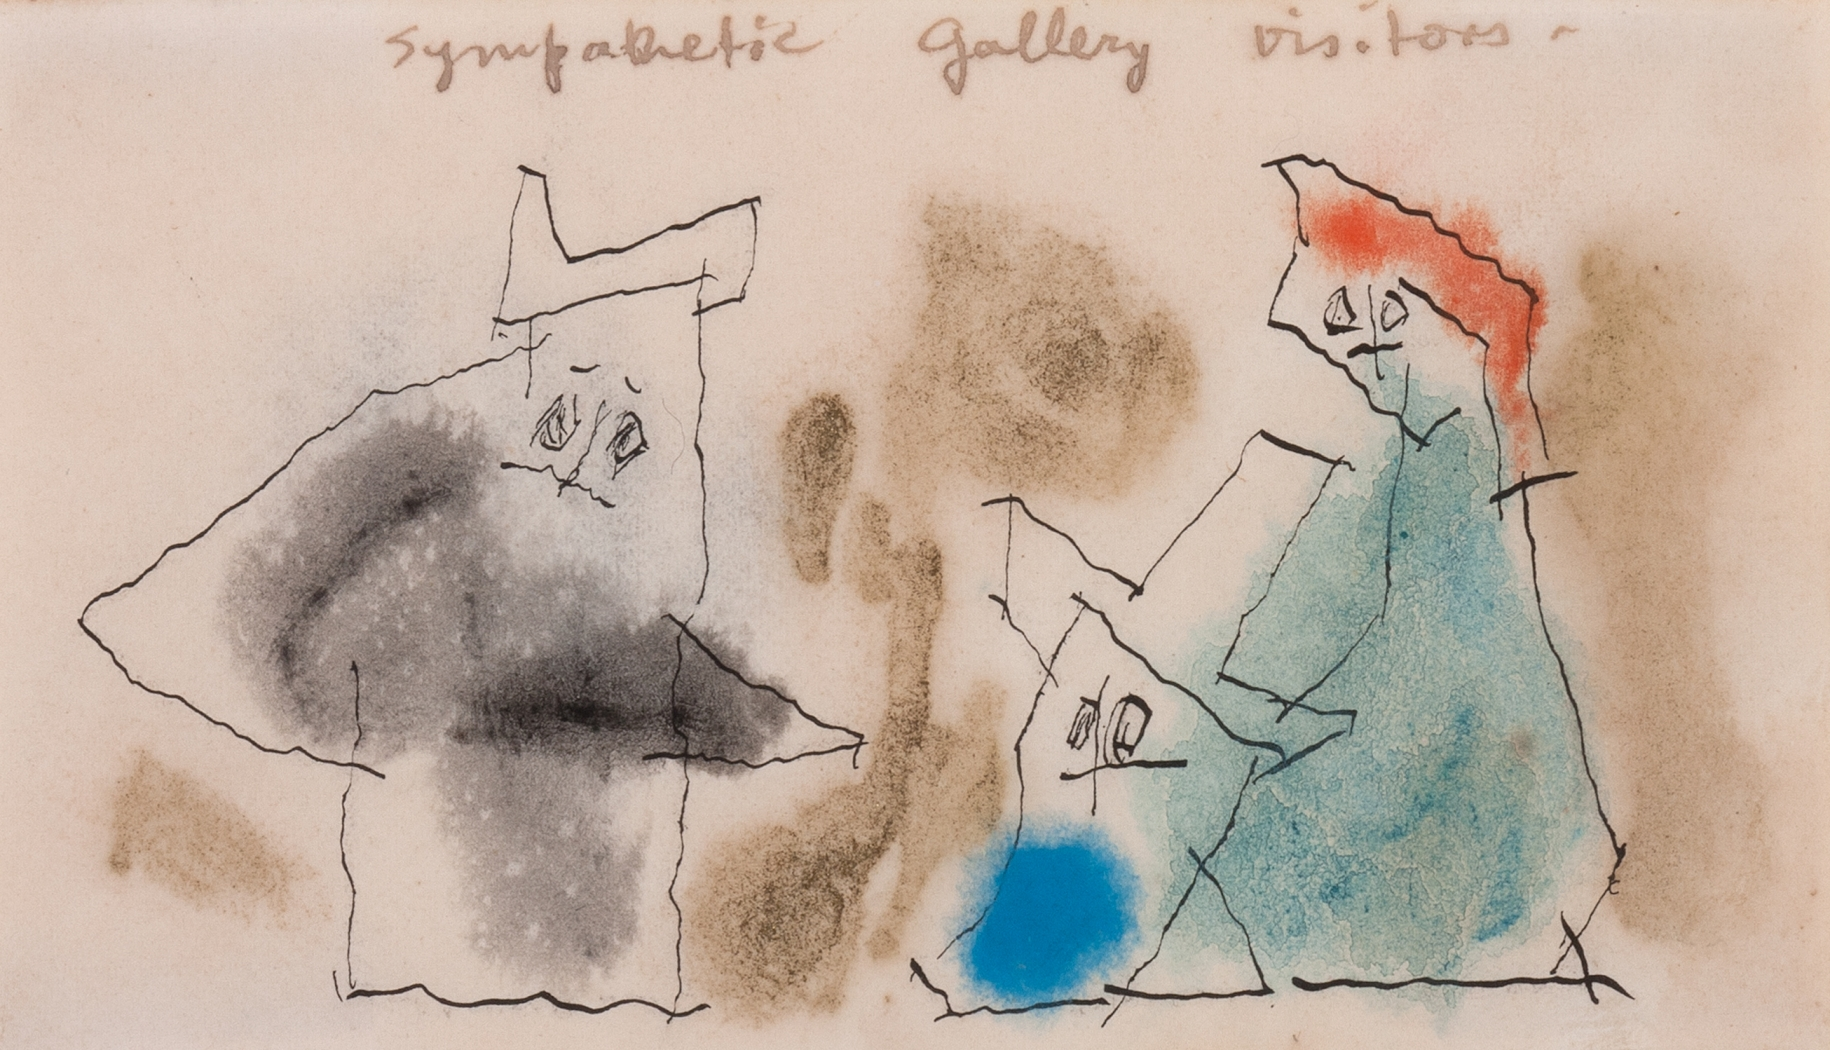 Lyonel Feininger: City at the Edge of the World